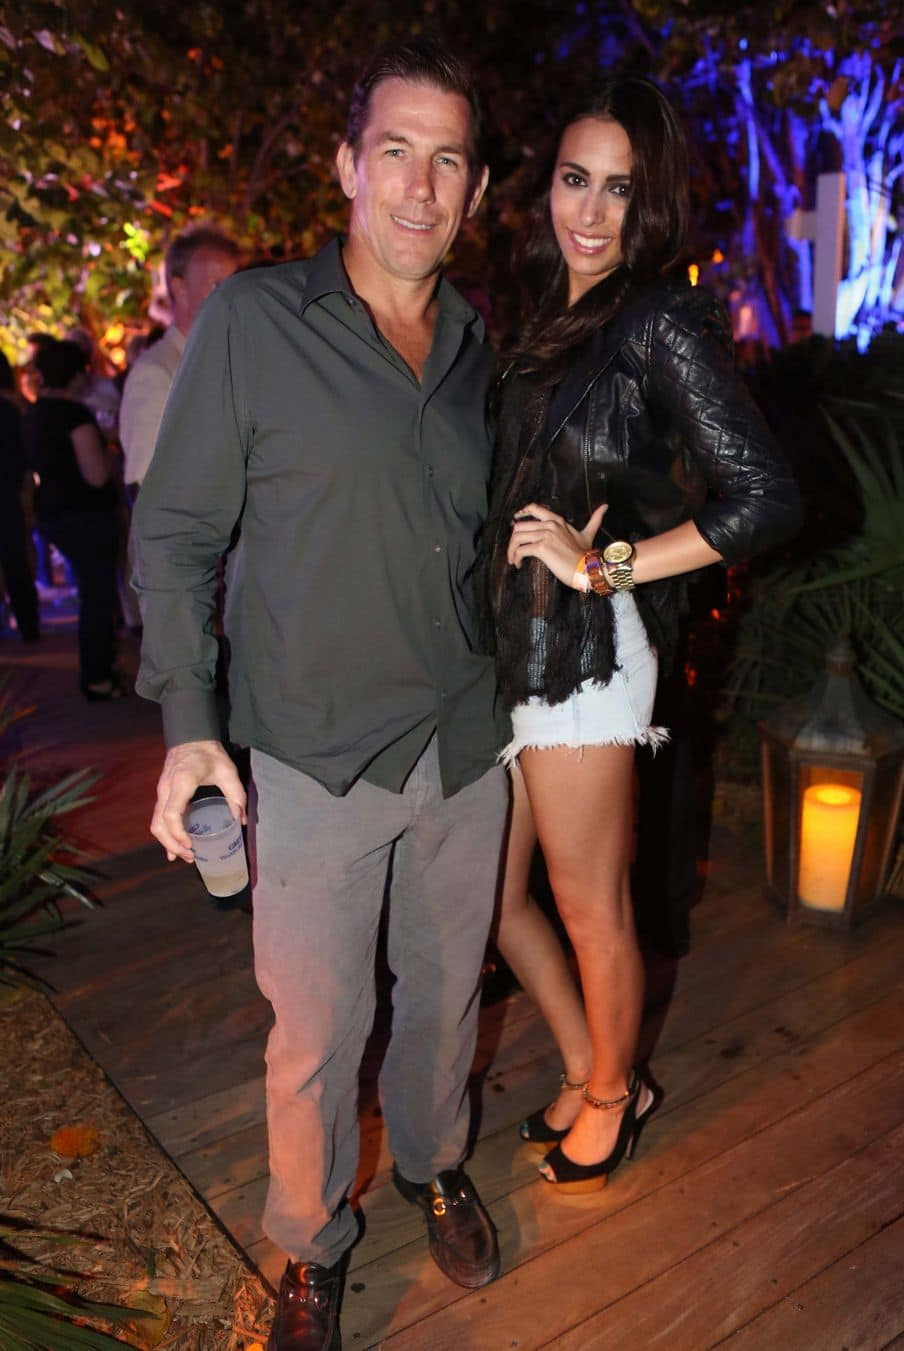 Thomas Ravenel and Rouge Apker attend Miami Beach Polo Event at W South Beach Hotel & Residences on April 26, 2013 in Miami Beach, Florida. (Photo by Aaron Davidson/Getty Images)